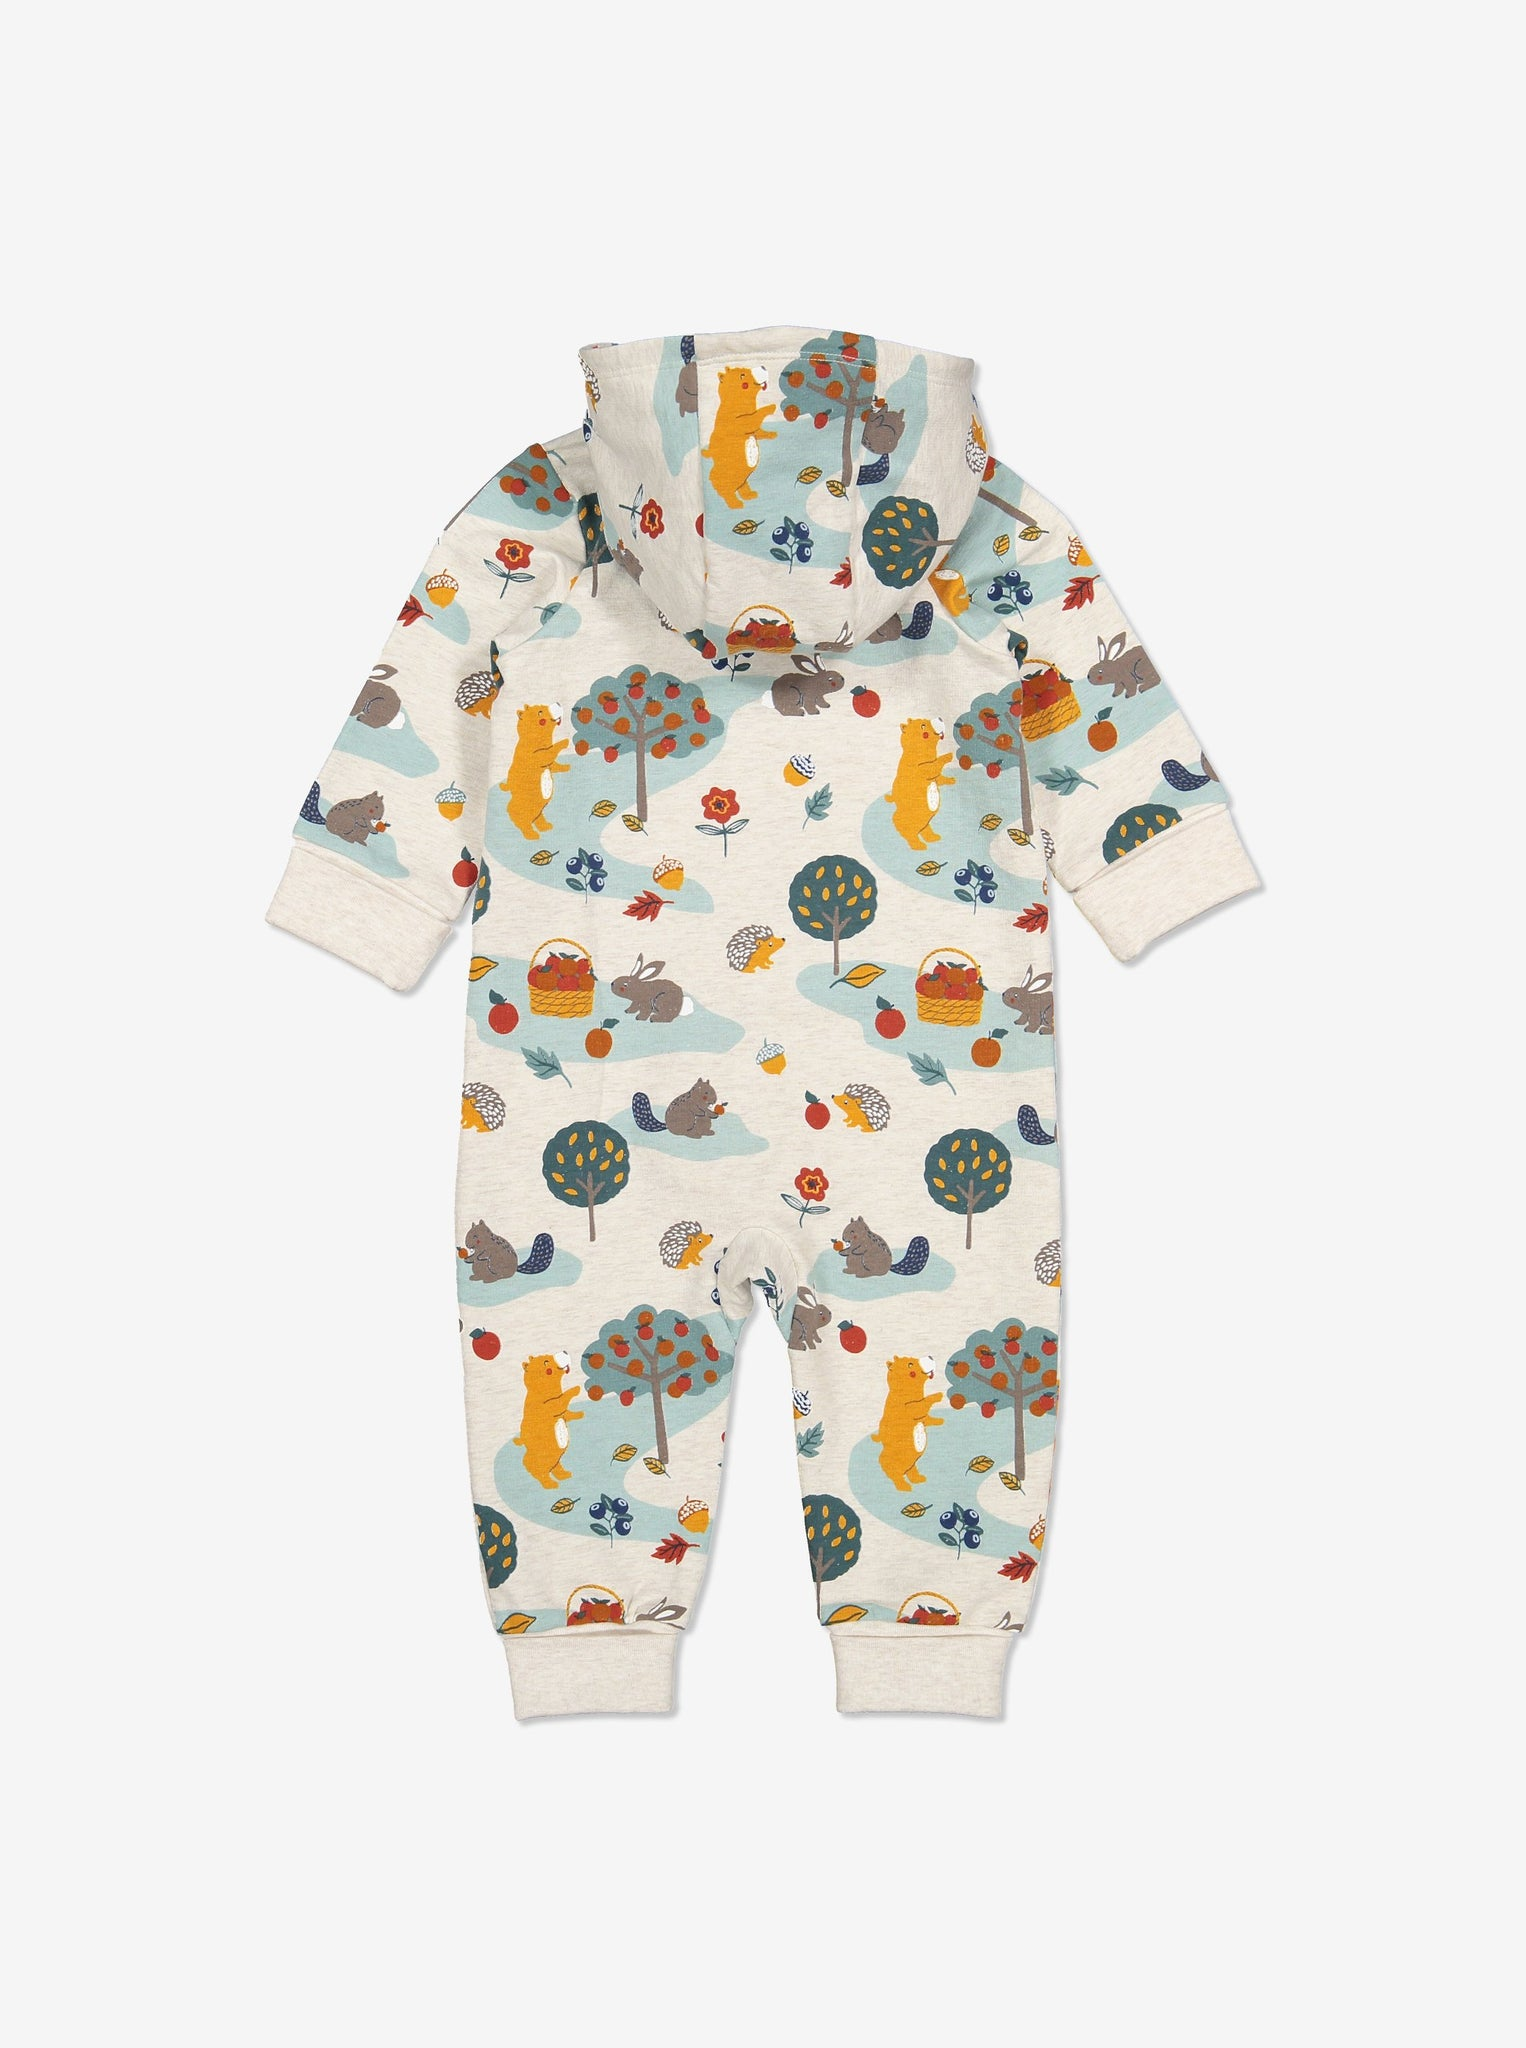 Unisex White Nordic Nature Baby All-in-one 0-1y